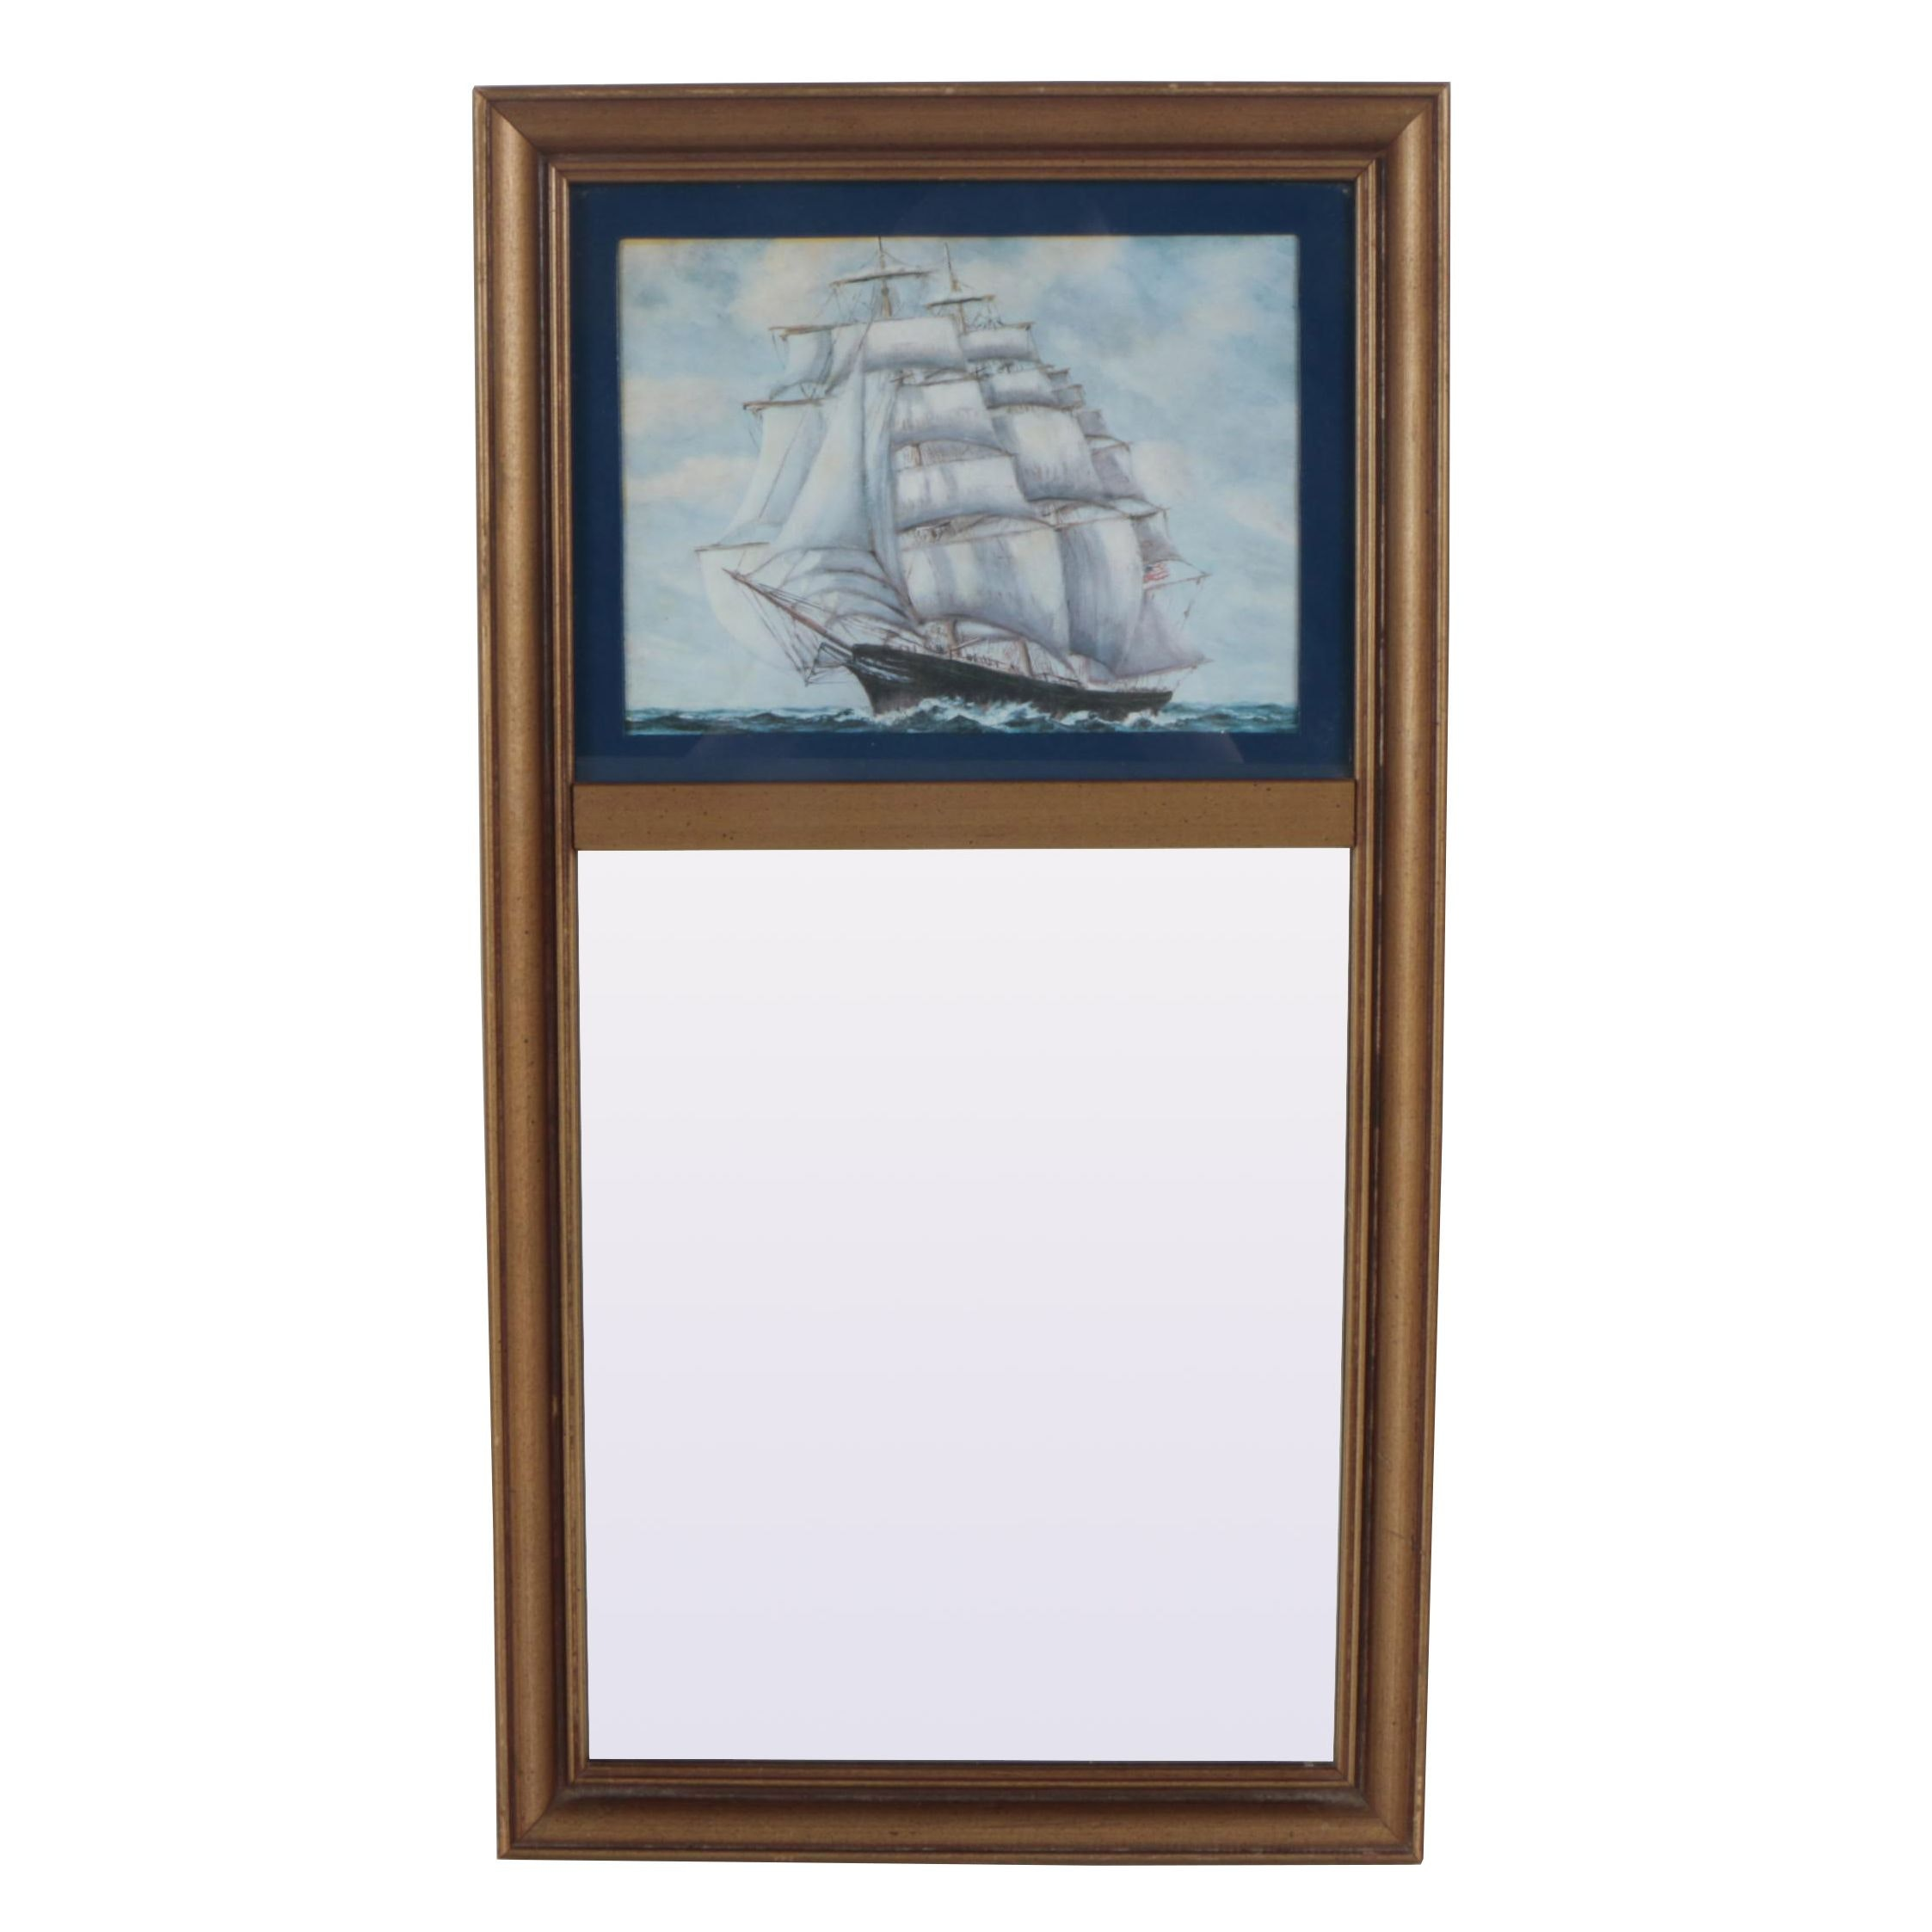 Trumeau Mirror with Offset Lithograph Depicting a Schooner